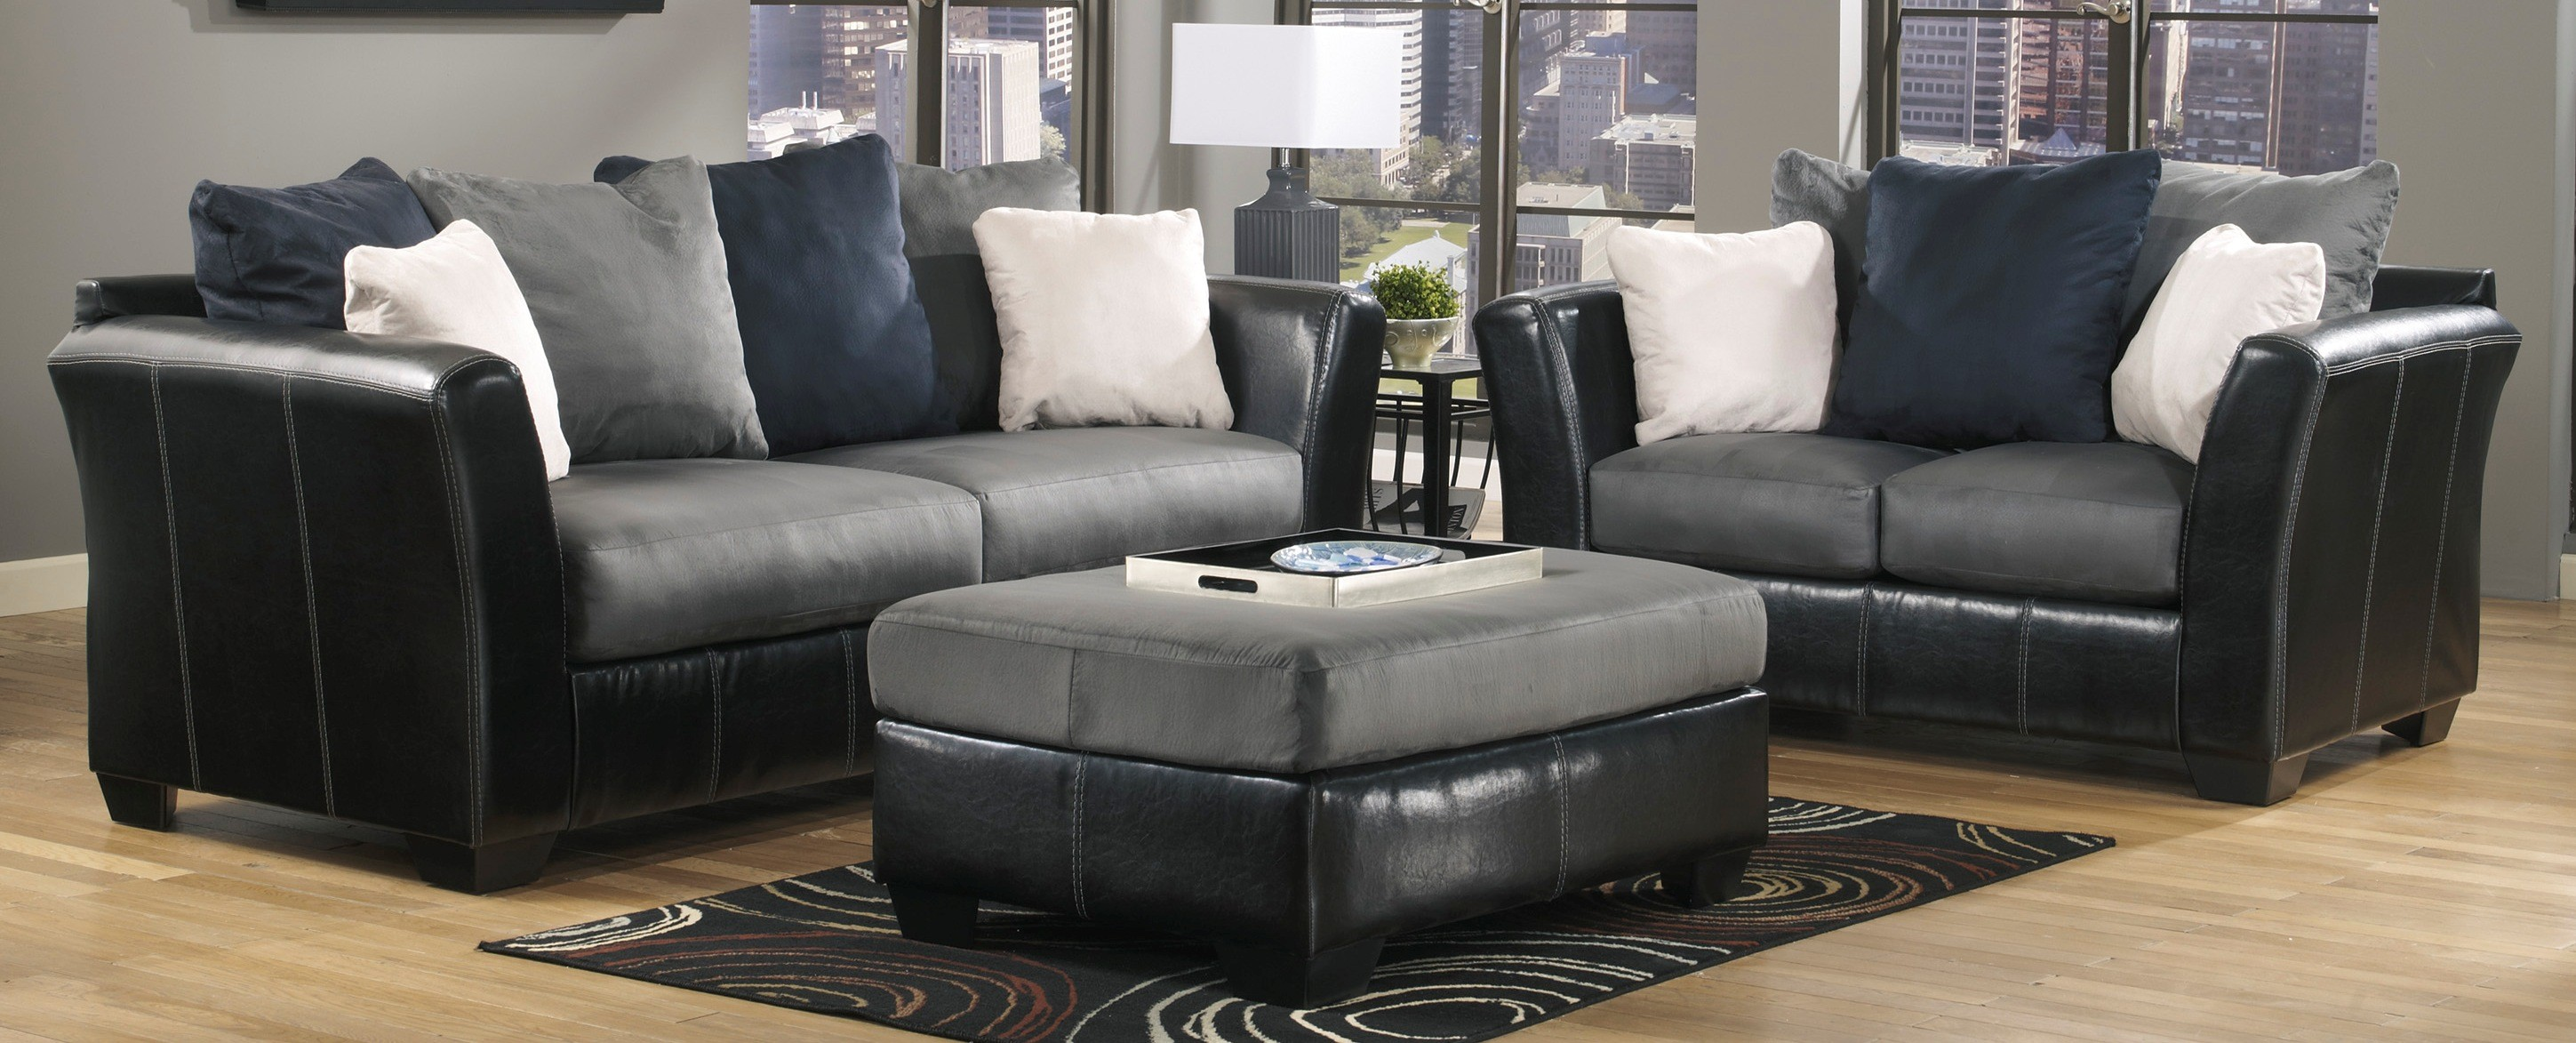 Ashley Furniture Louisville | Ashley Furniture South County | Ashleys Furniture Warehouse